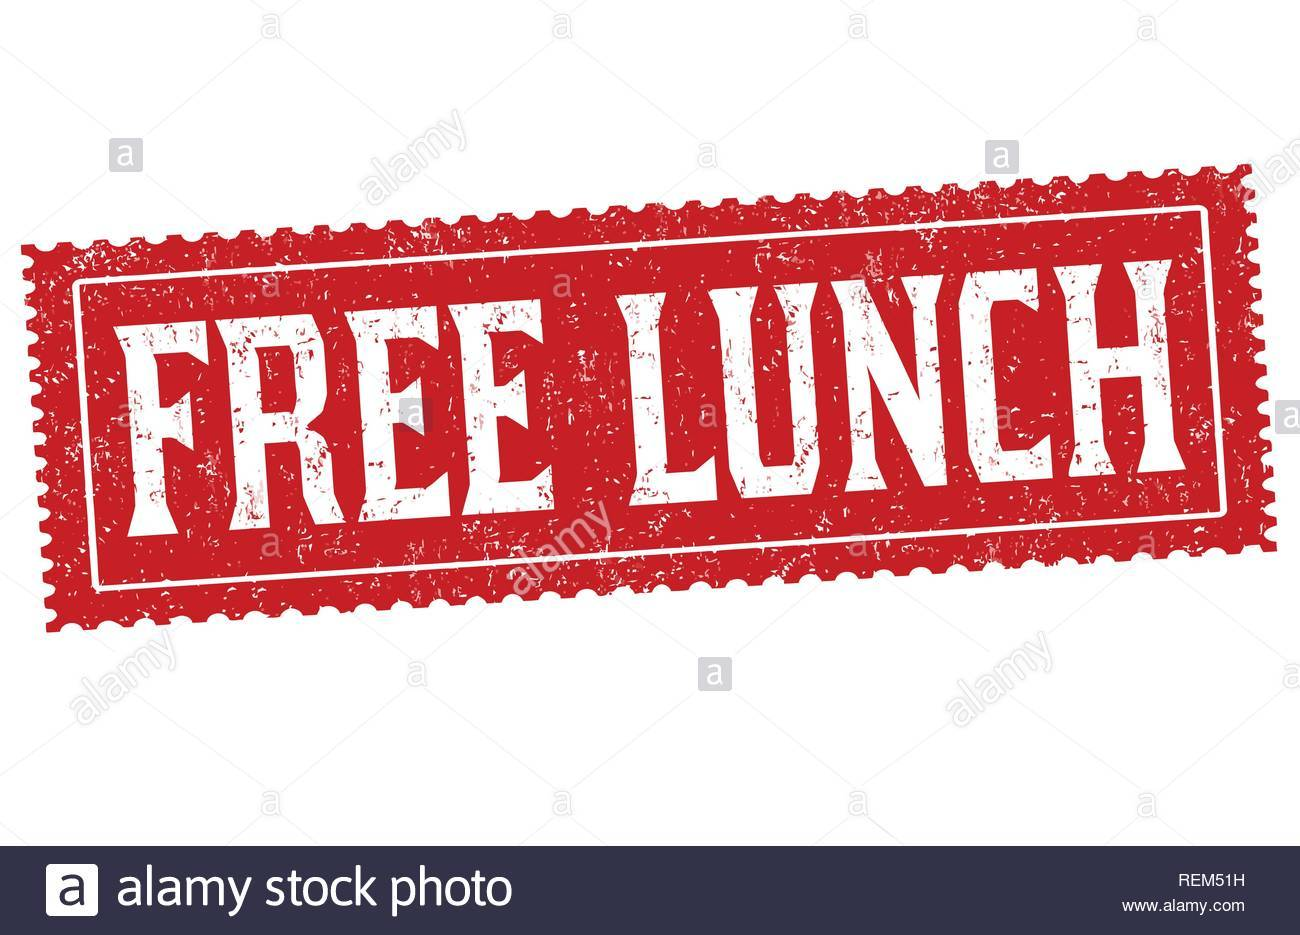 Offer Lunch #9 - Free Lunch!